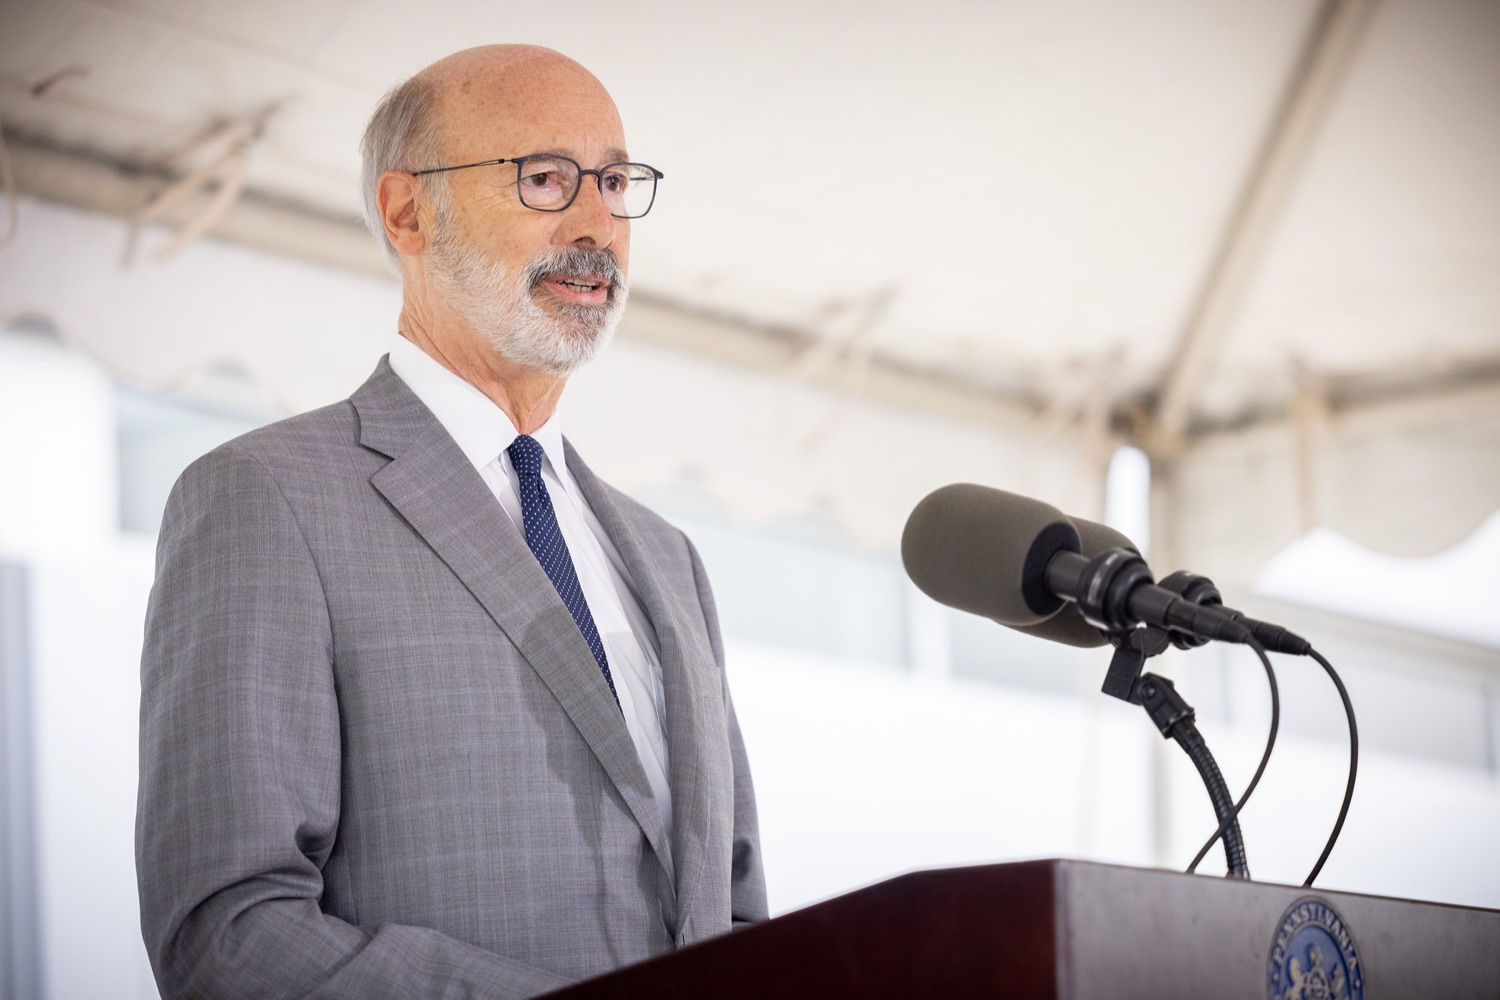 """<a href=""""https://filesource.wostreaming.net/commonwealthofpa/photo/20138_gov_BioTechniqueRibbon_dz_009.JPG"""" target=""""_blank"""">⇣Download Photo<br></a>Pennsylvania Governor Tom Wolf speaking with the press.  Governor Tom Wolf today joined BioTechnique CEO John Clapham, the Department of Community and Economic Developments (DCED) Governors Action Team (GAT), York County Economic Alliance CEO Kevin Schreiber, and local officials at the ribbon cutting ceremony for BioTechniques new pharmaceutical manufacturing facility in York County.   OCTOBER 12, 2021 - YORK, PA"""